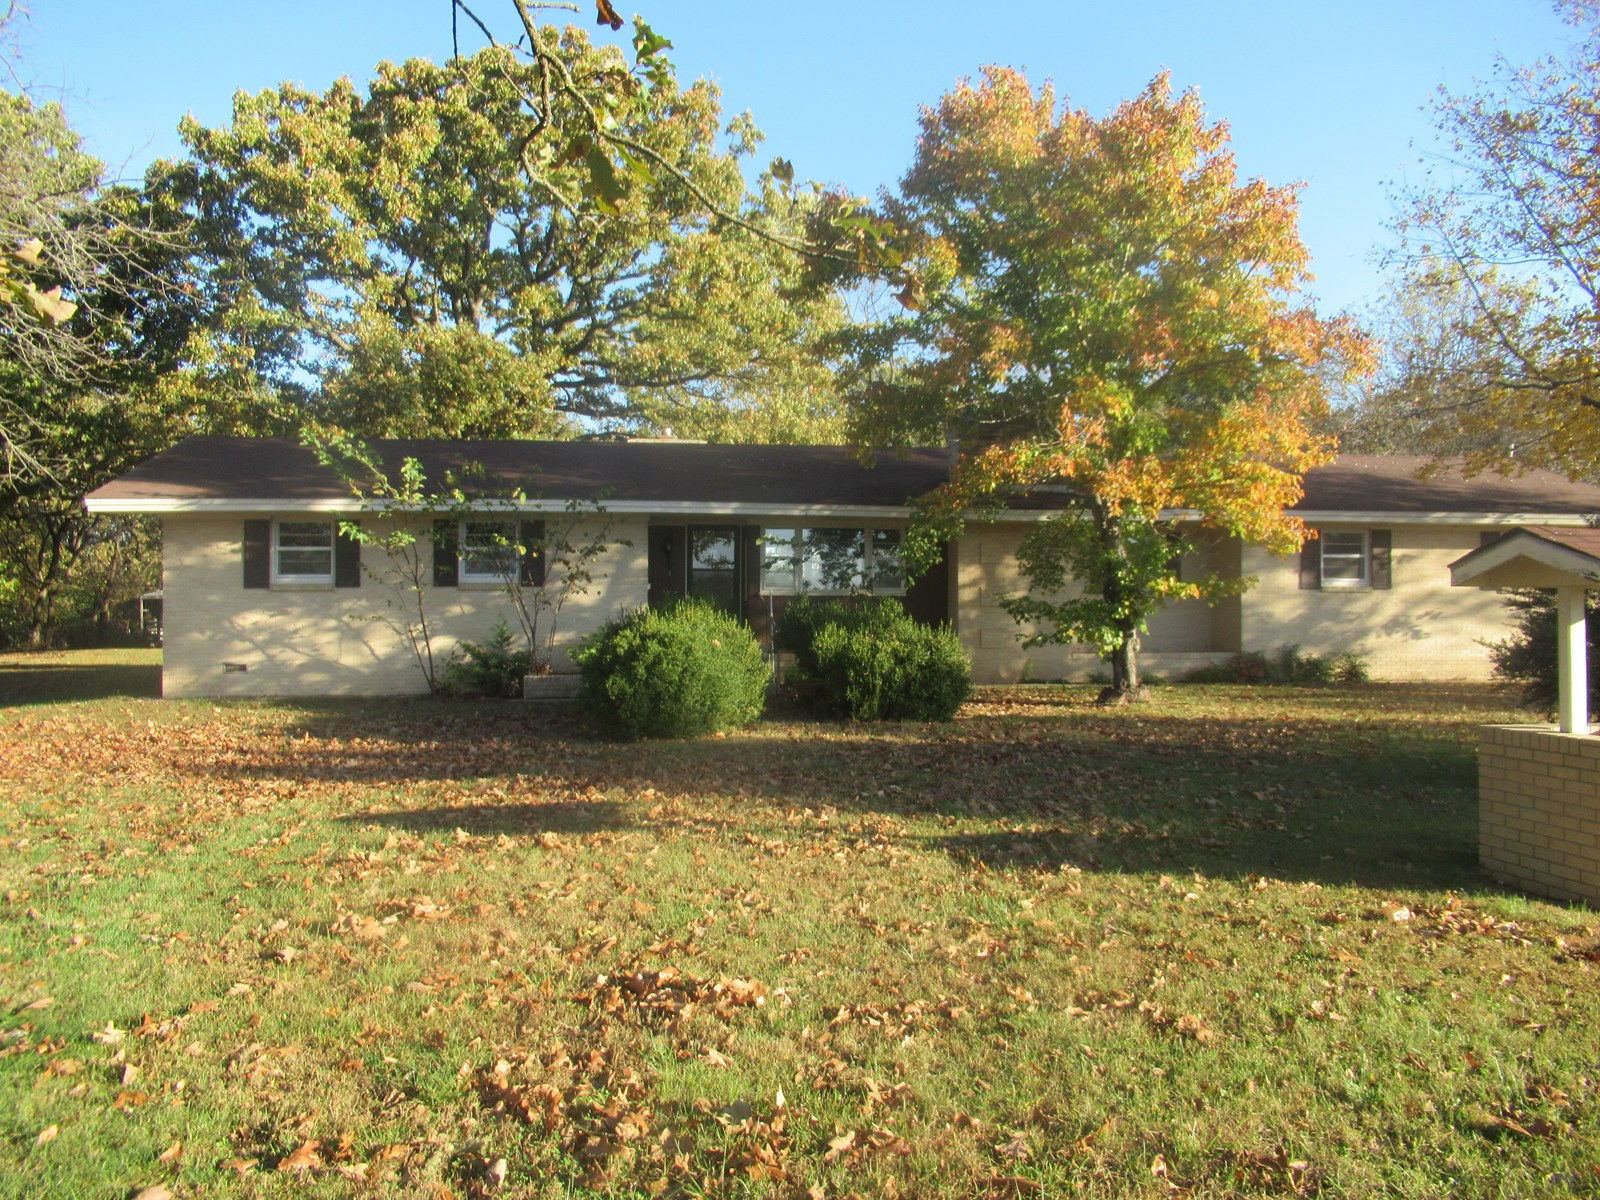 Country Home For Sale in Everton, Mo